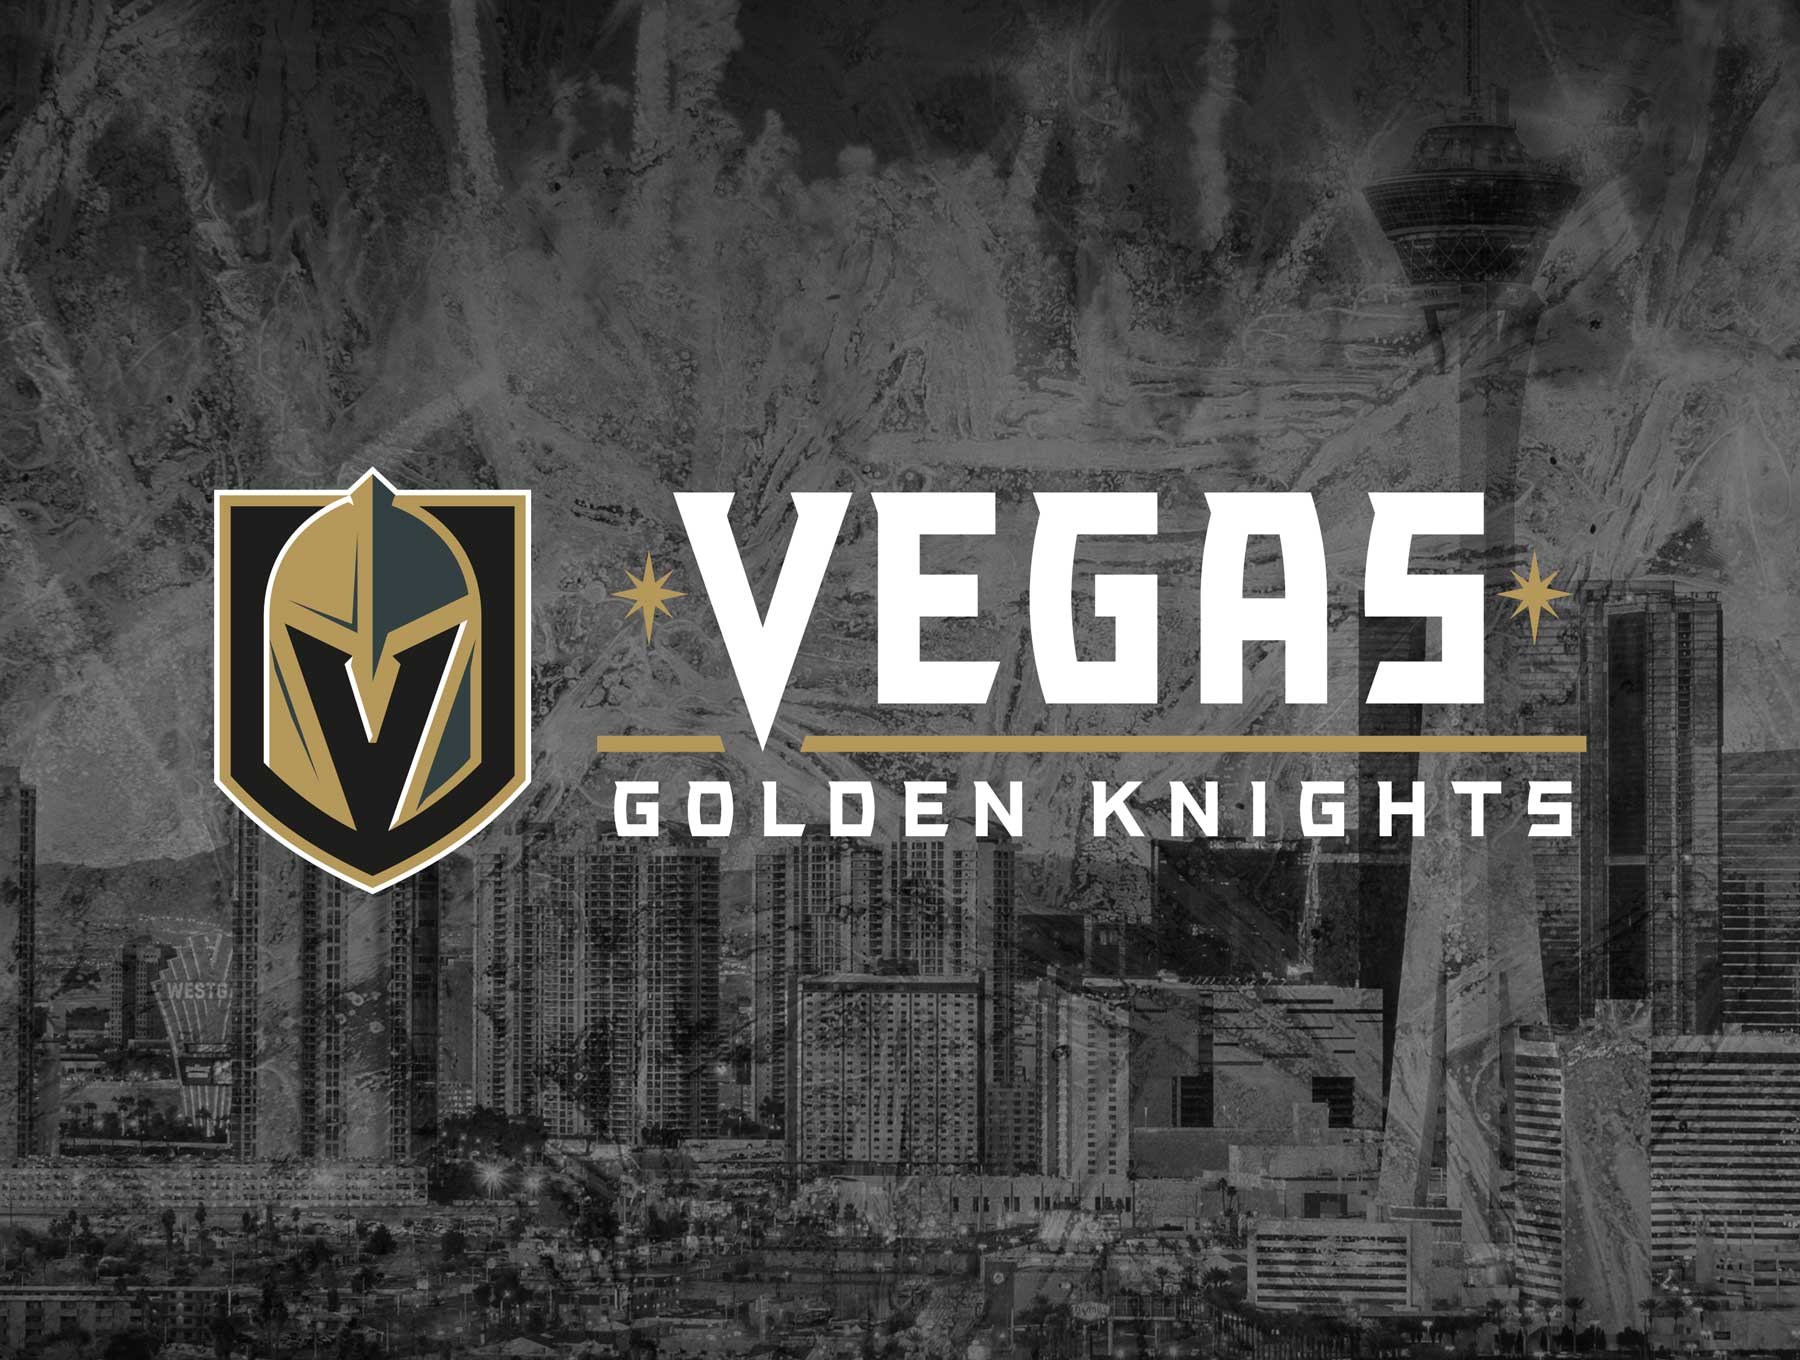 Vegas Golden Knights logo.